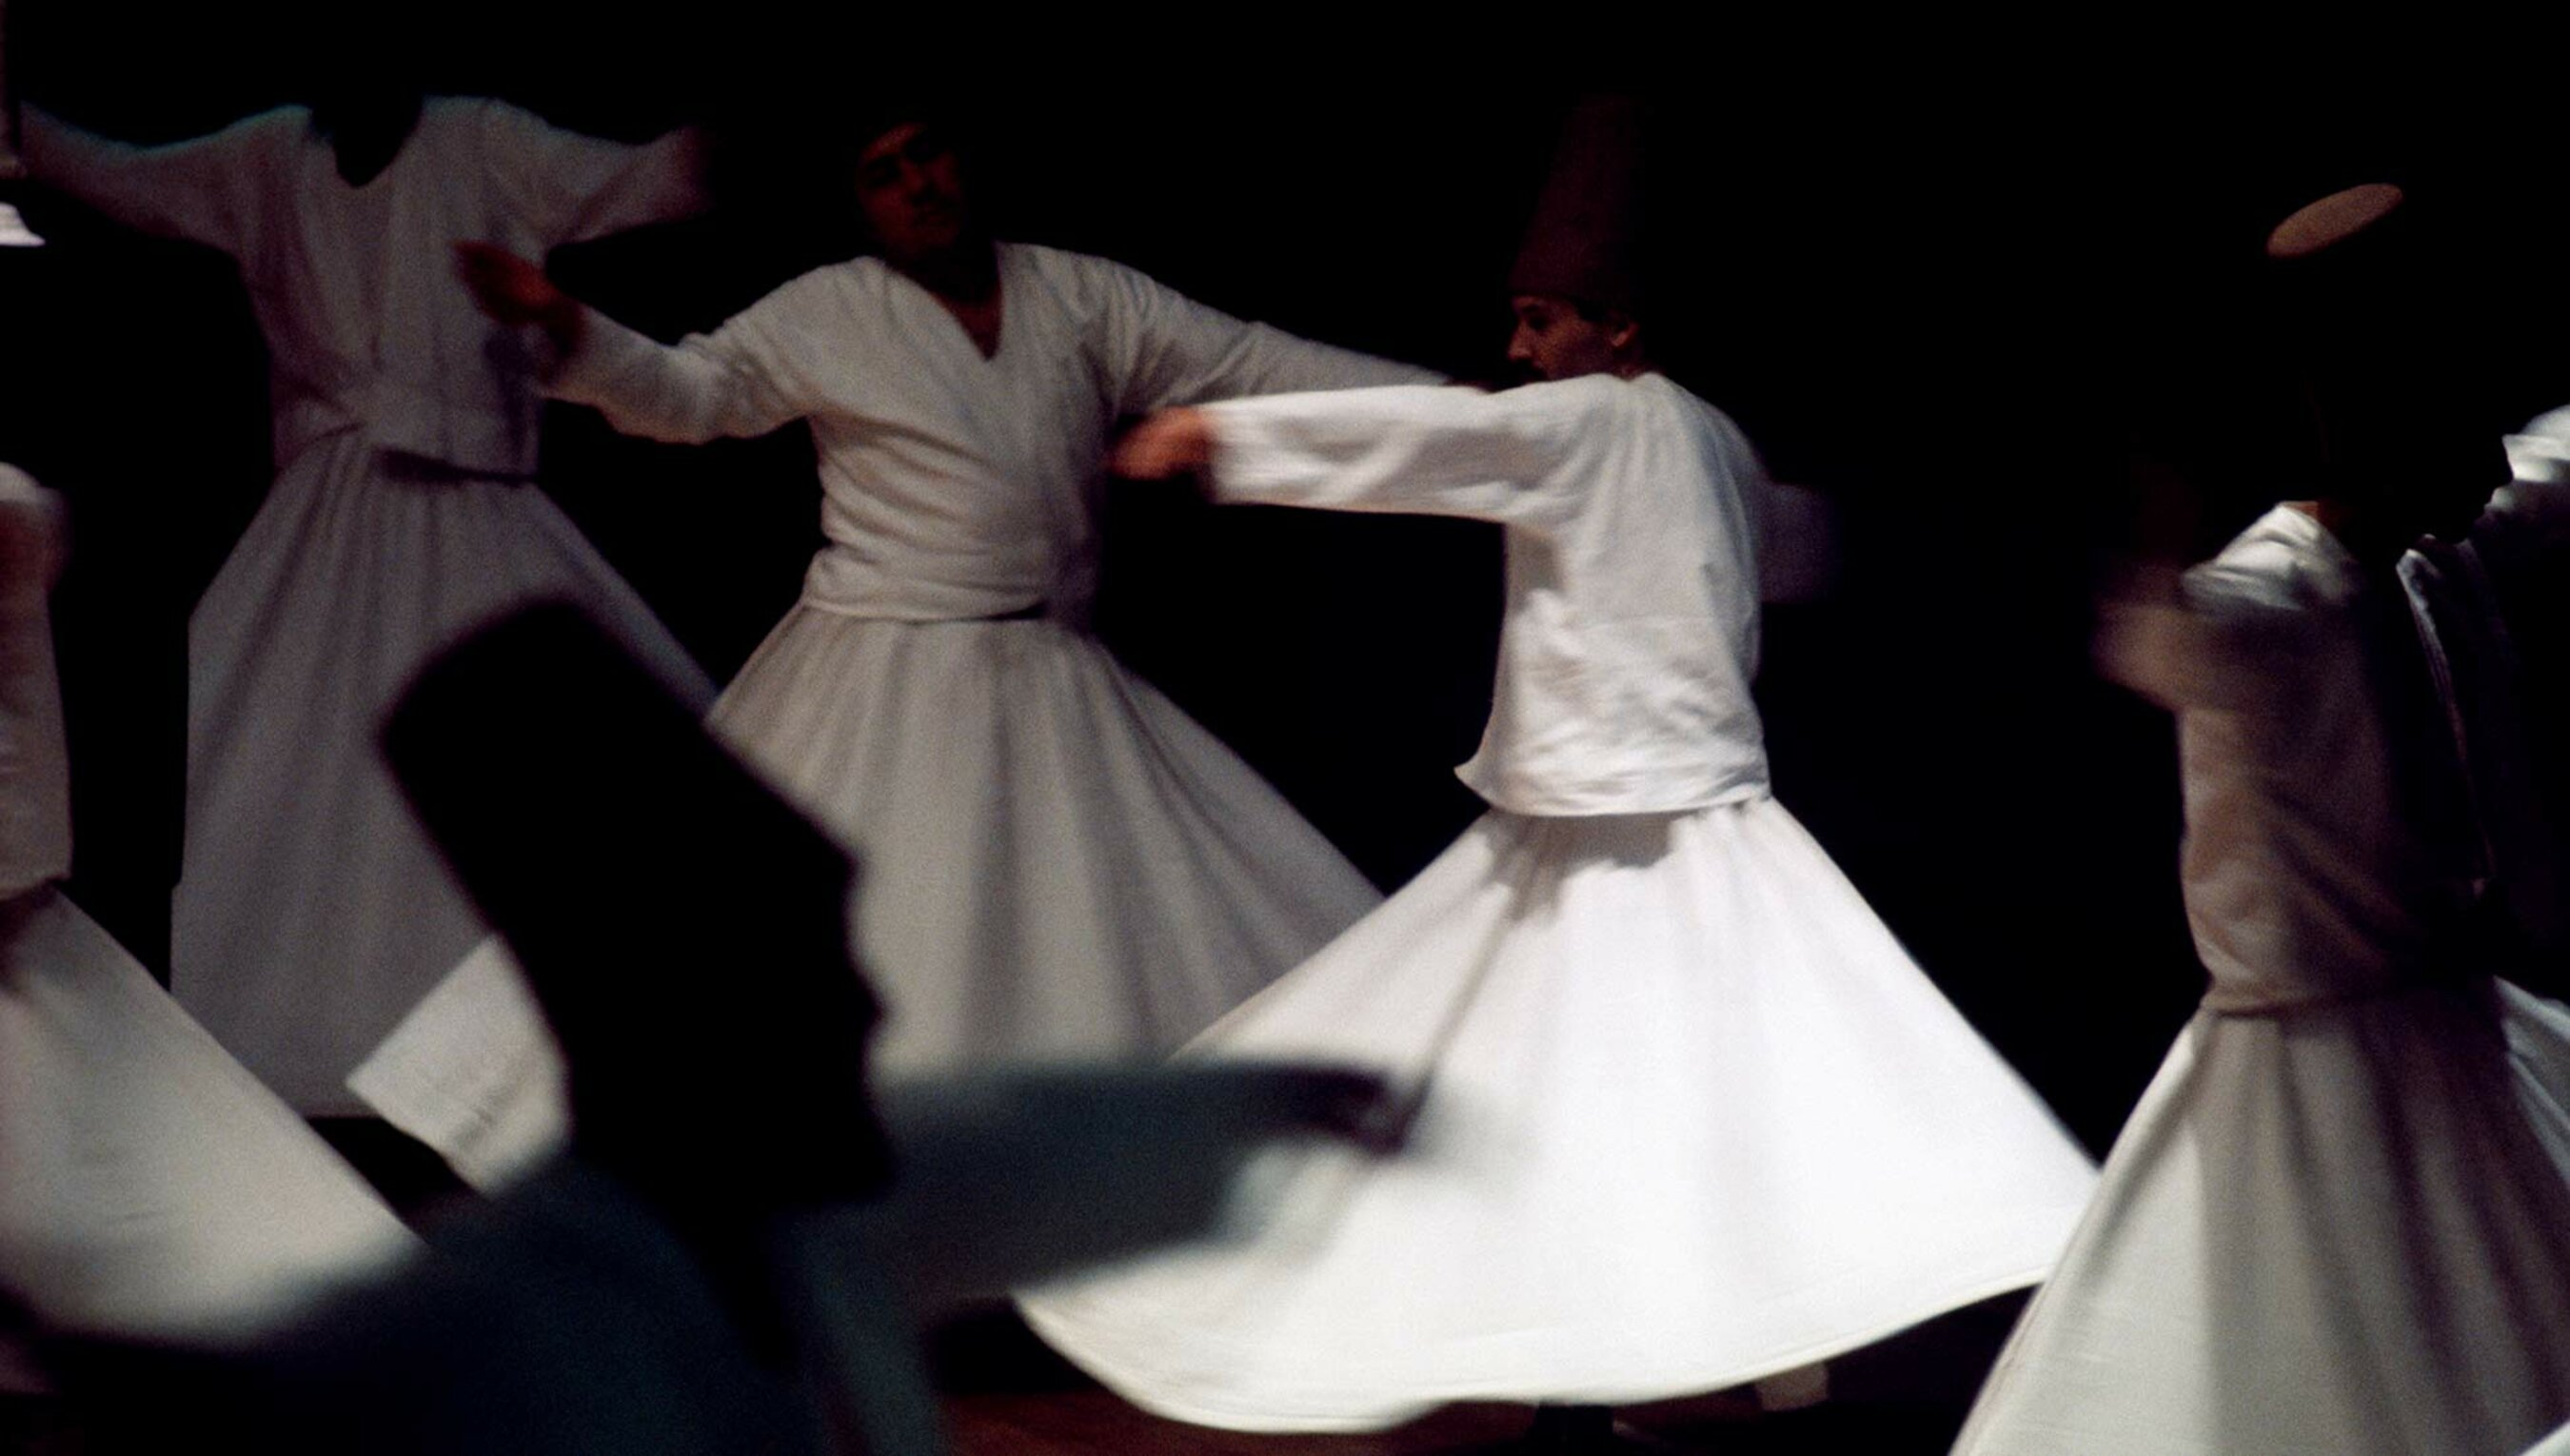 Sufi love poetry is in vogue, but few grasp its radical meaning | Psyche